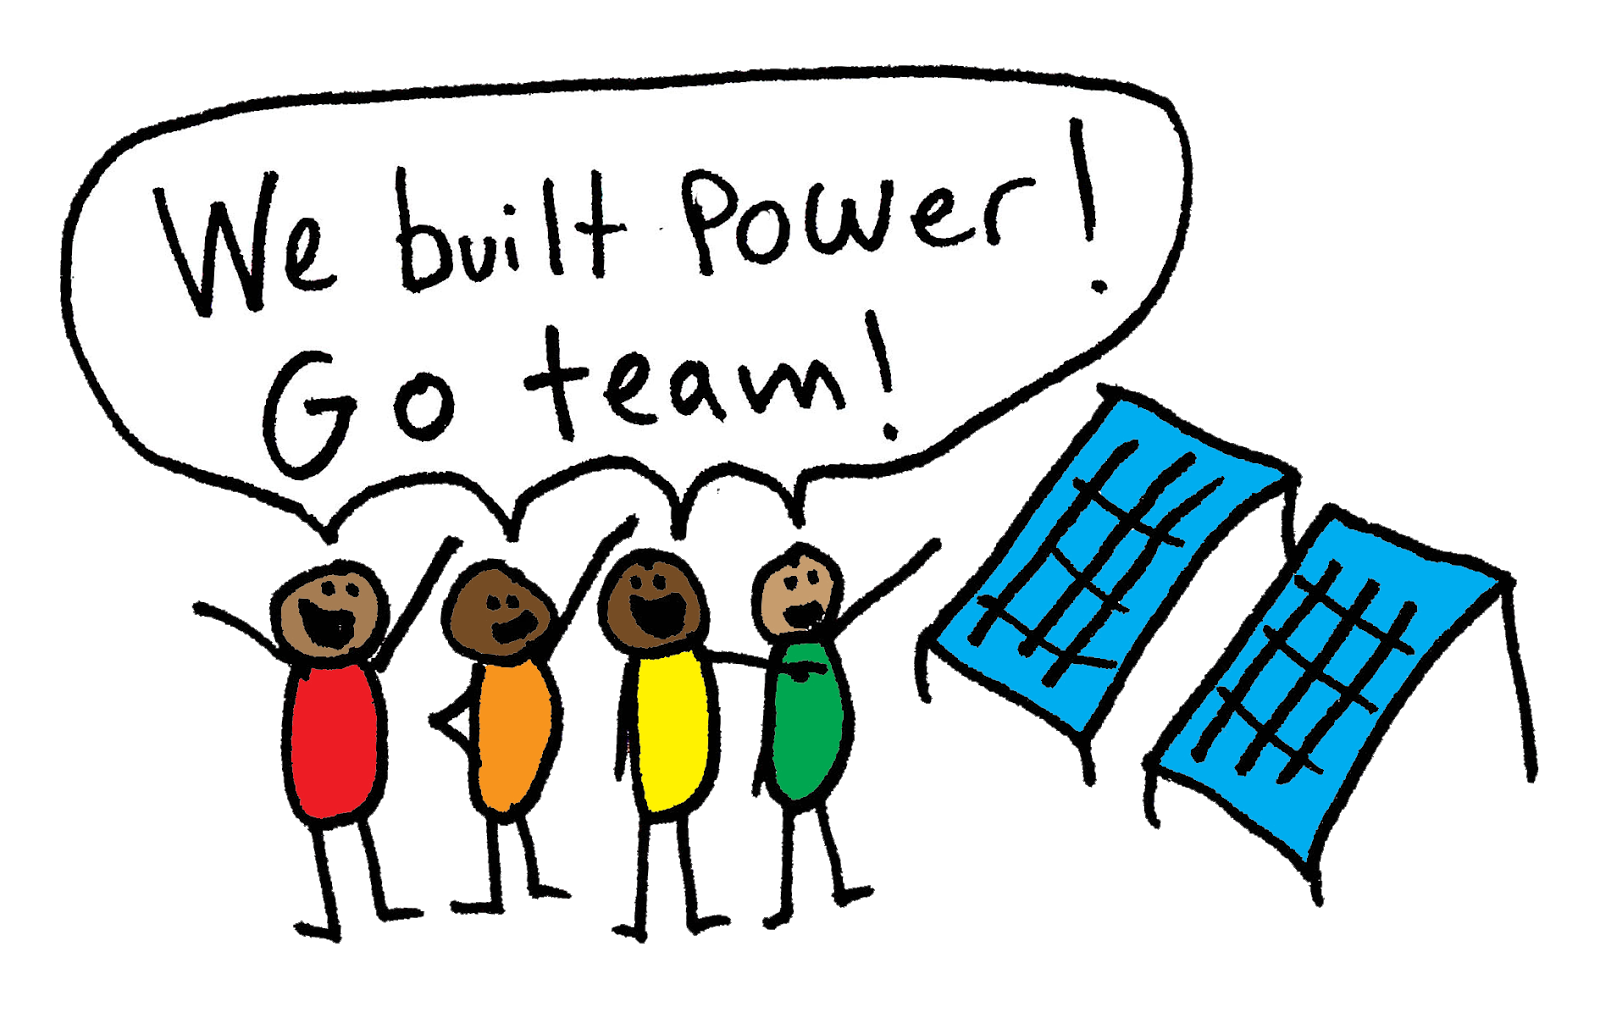 We build power cartoon